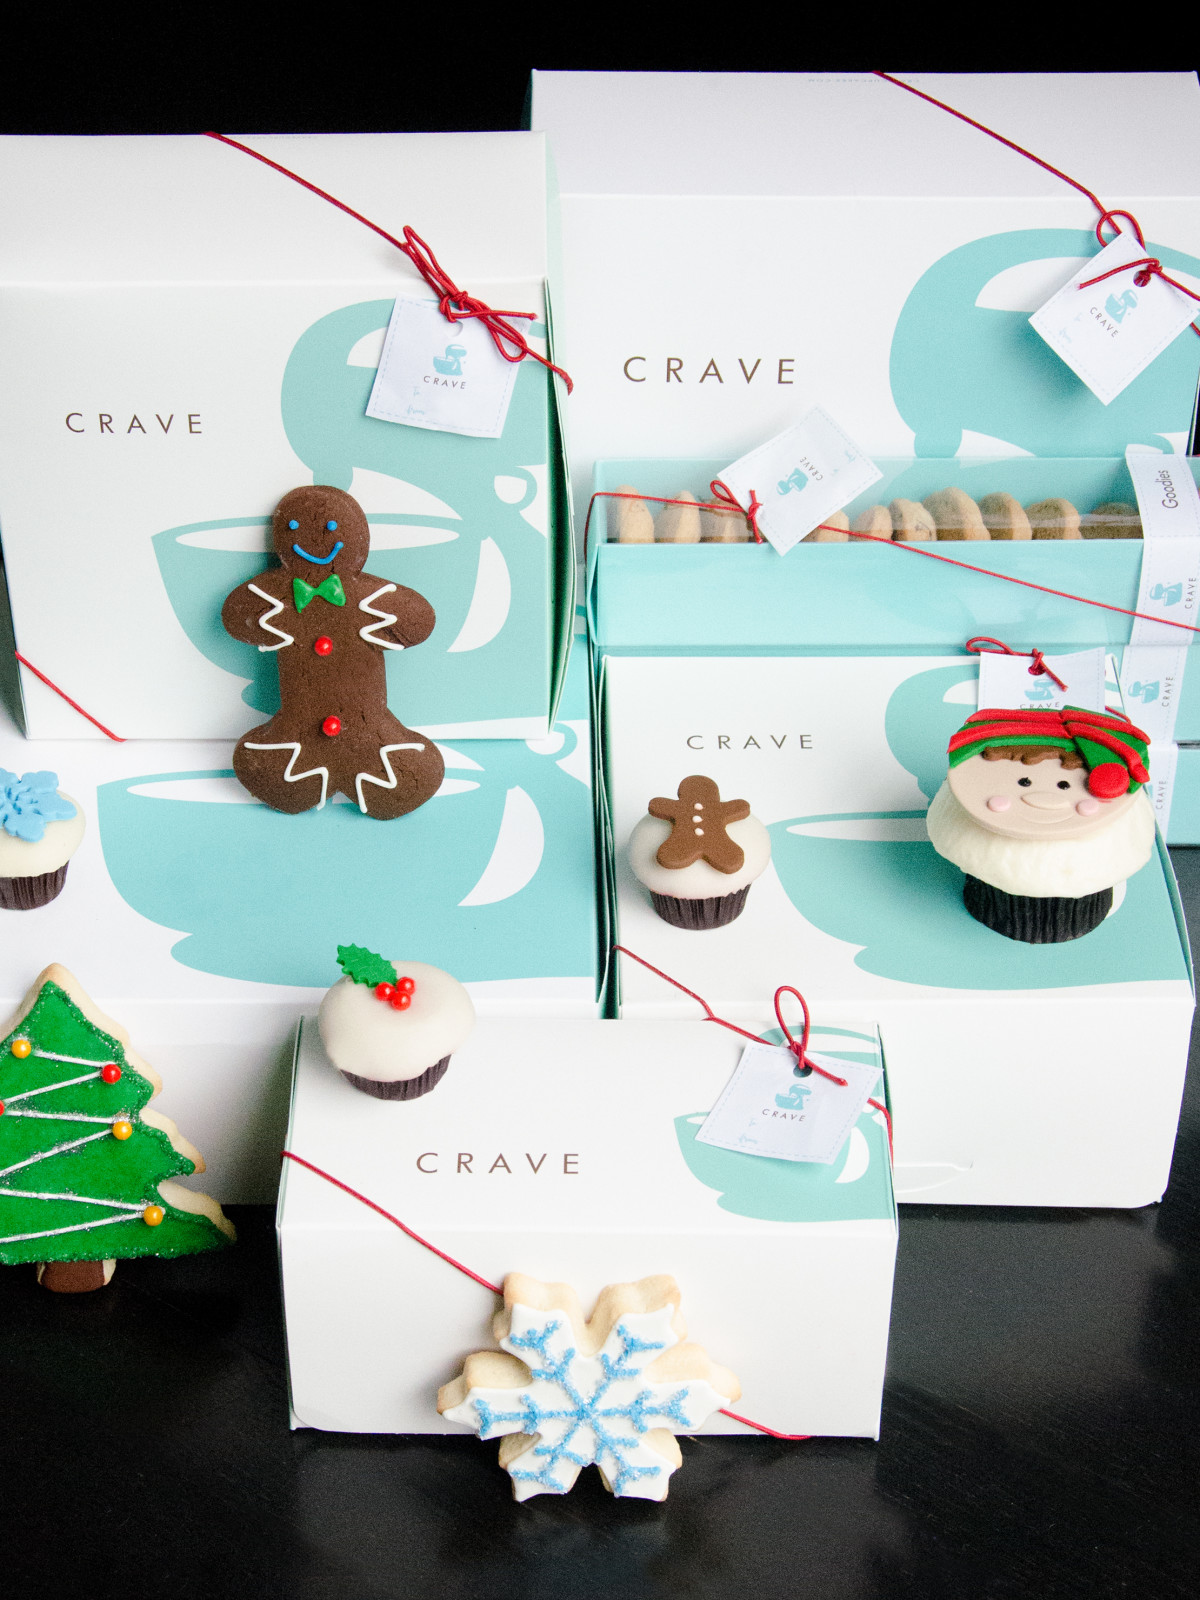 Crave gift boxes